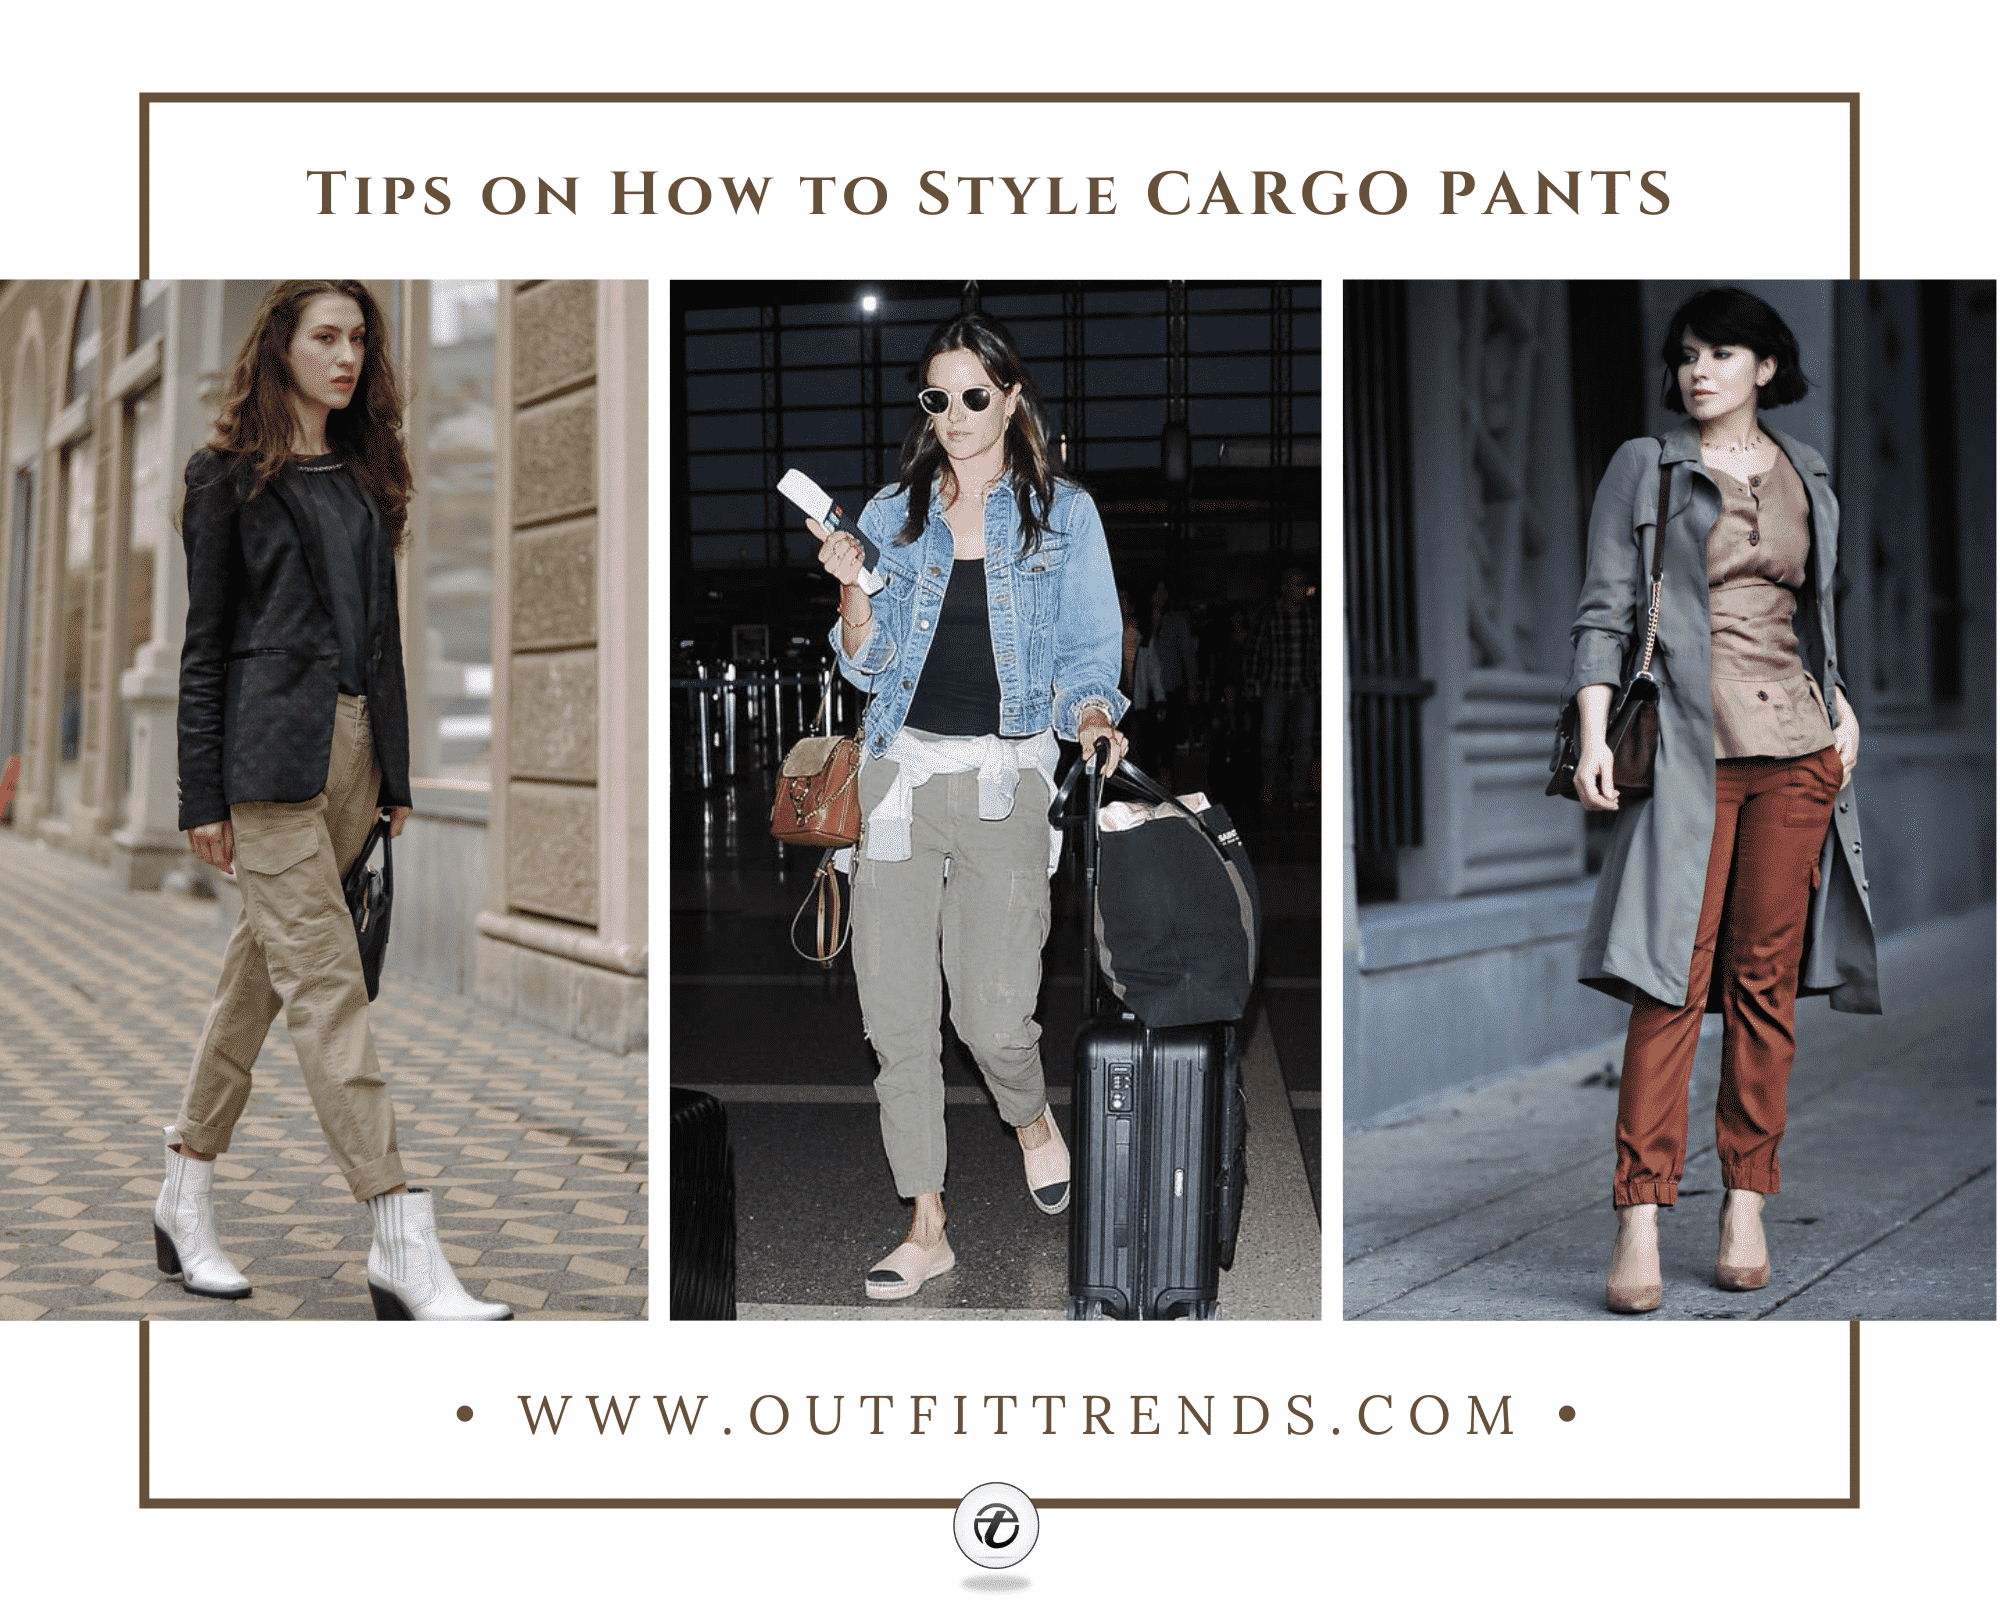 Women Cargo Pant Outfits21 Ways to Wear Style Cargo Pants